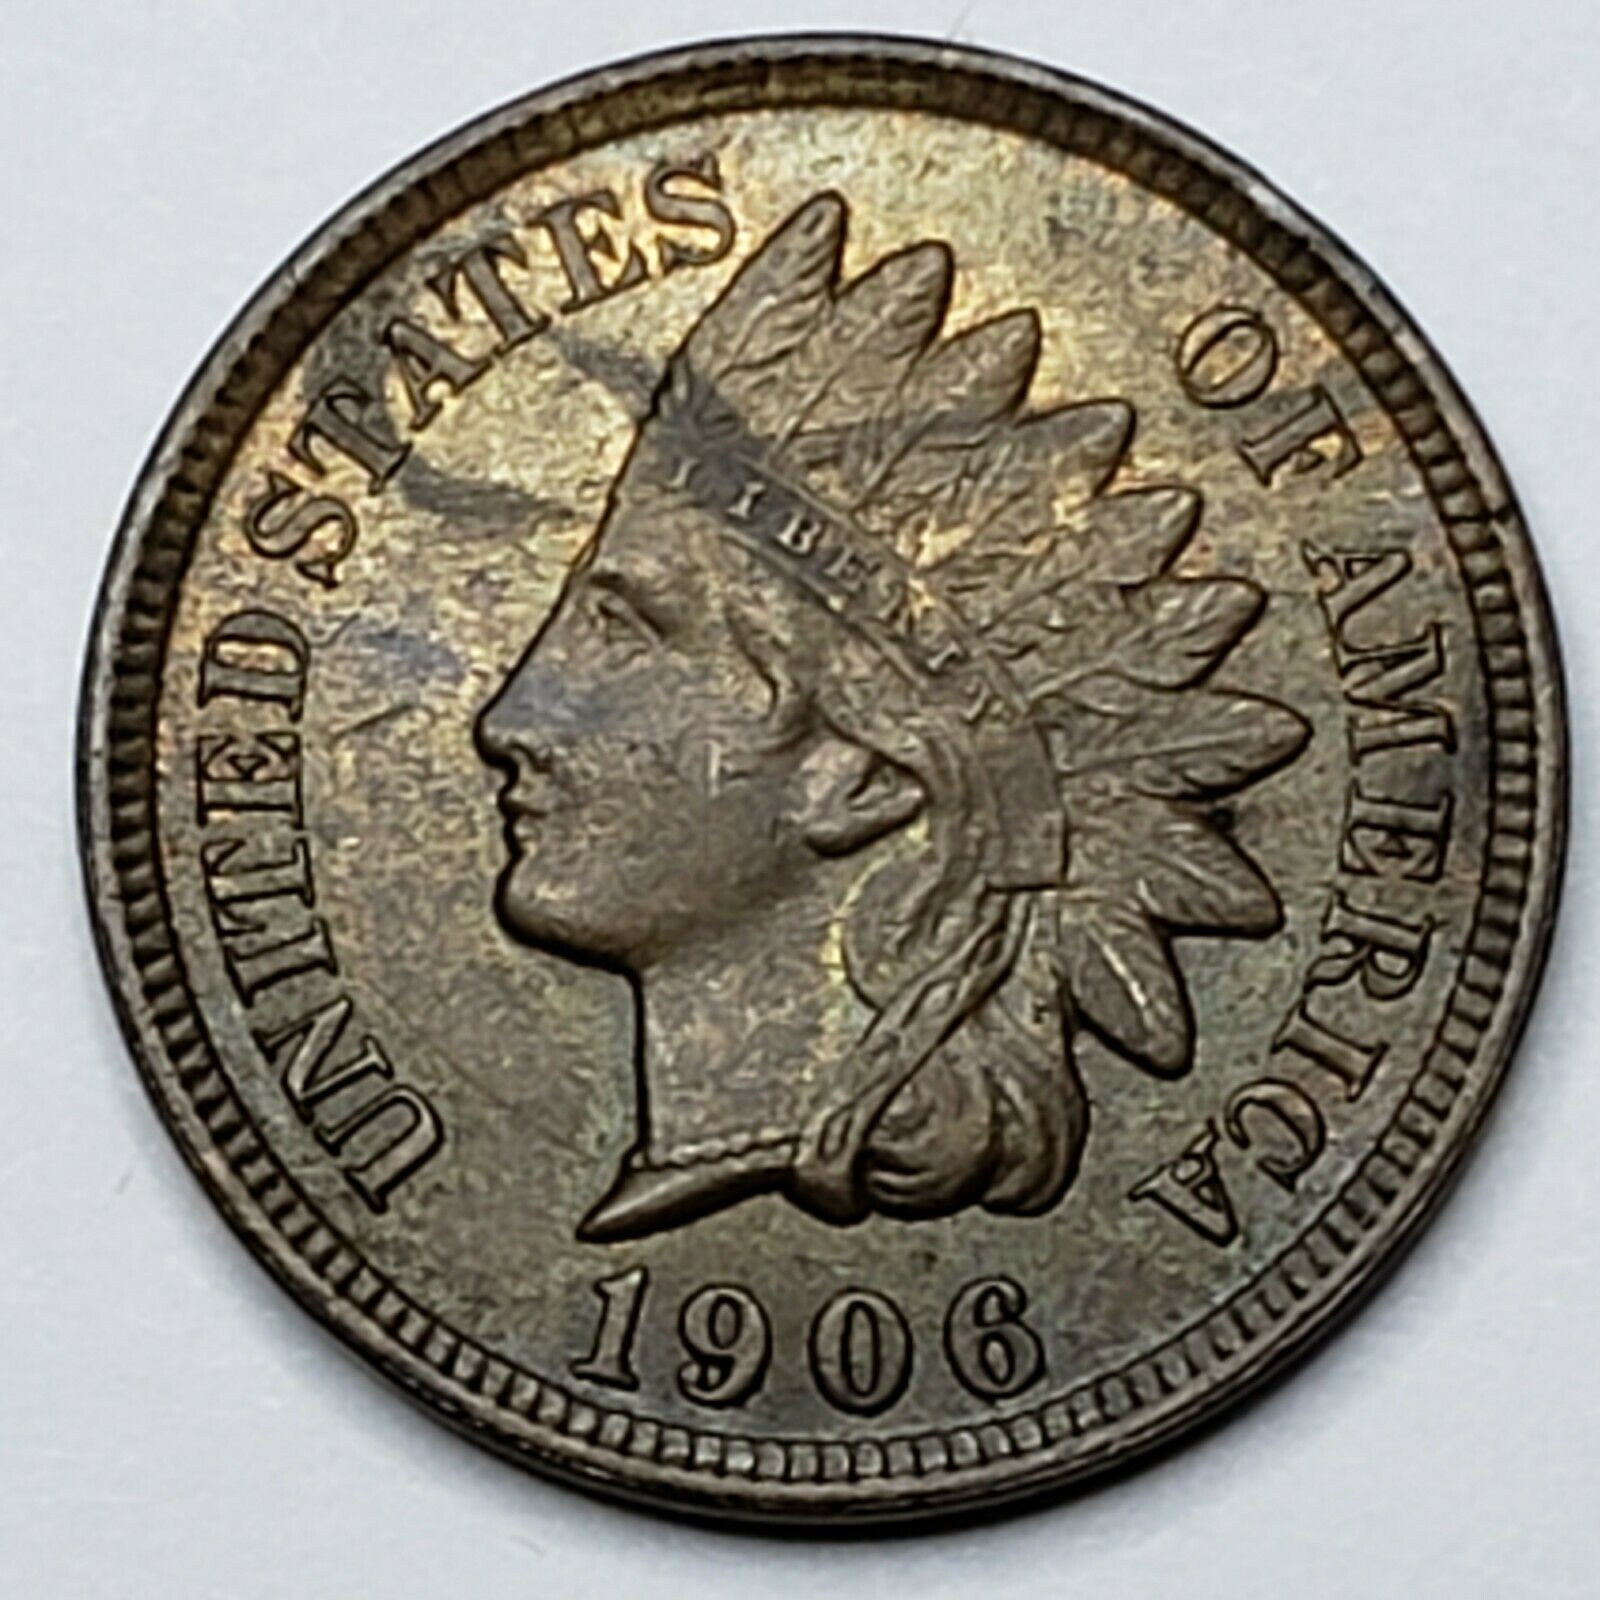 1906 Indian Head Cent Penny Coin Lot 519-95